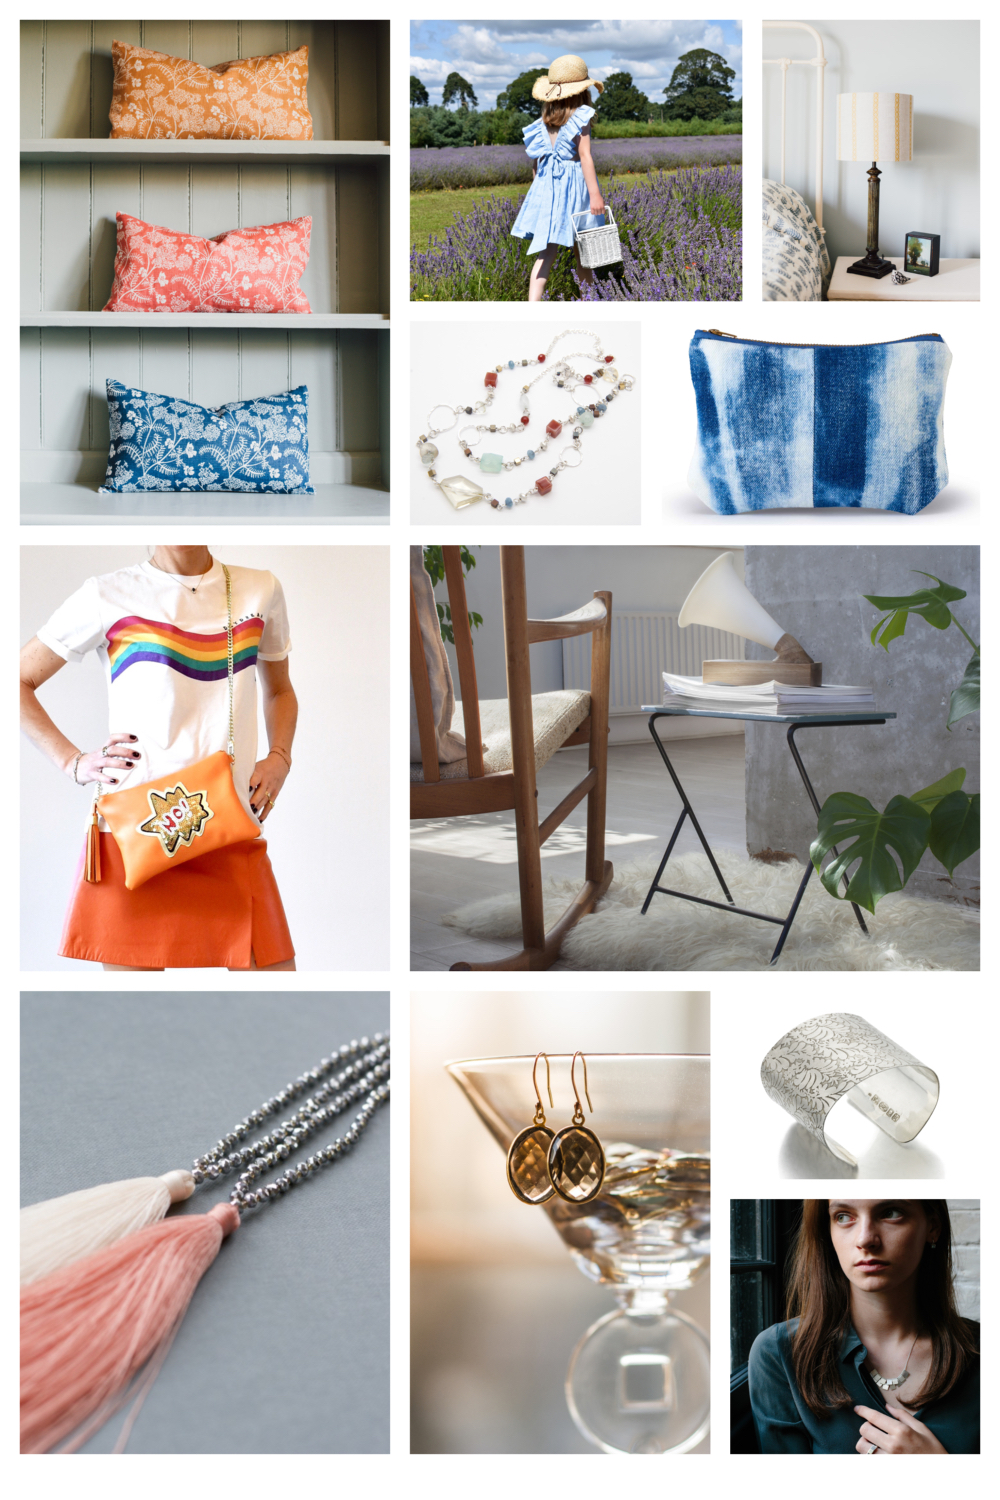 Summer Design Fair 2 - collage (1).jpg